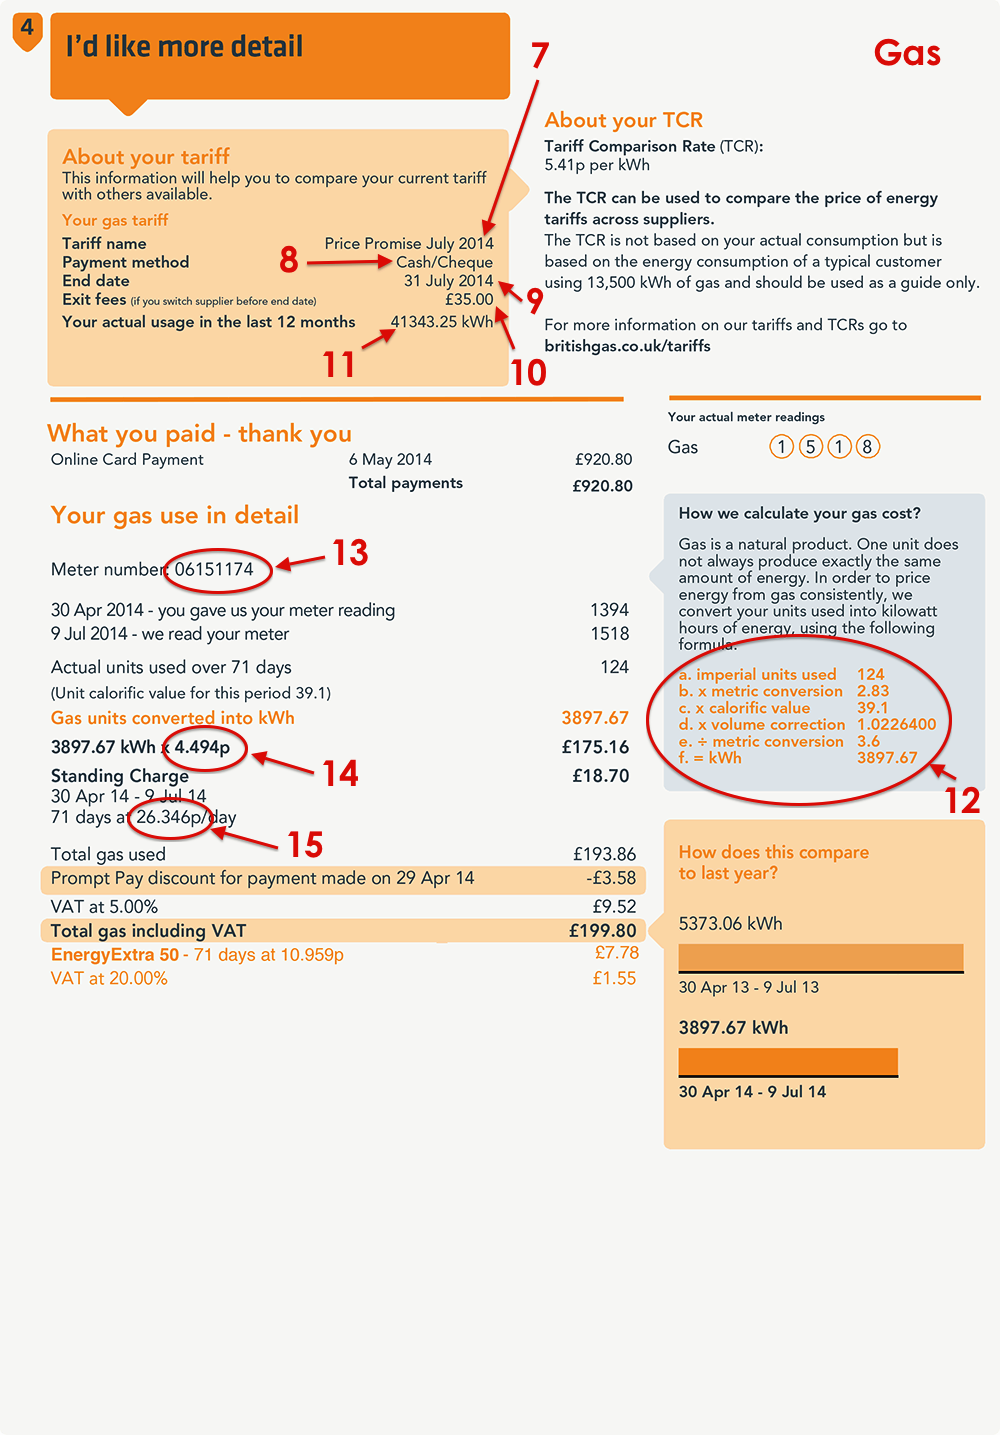 Find out more about Sainsbury's Energy with our useful guide.